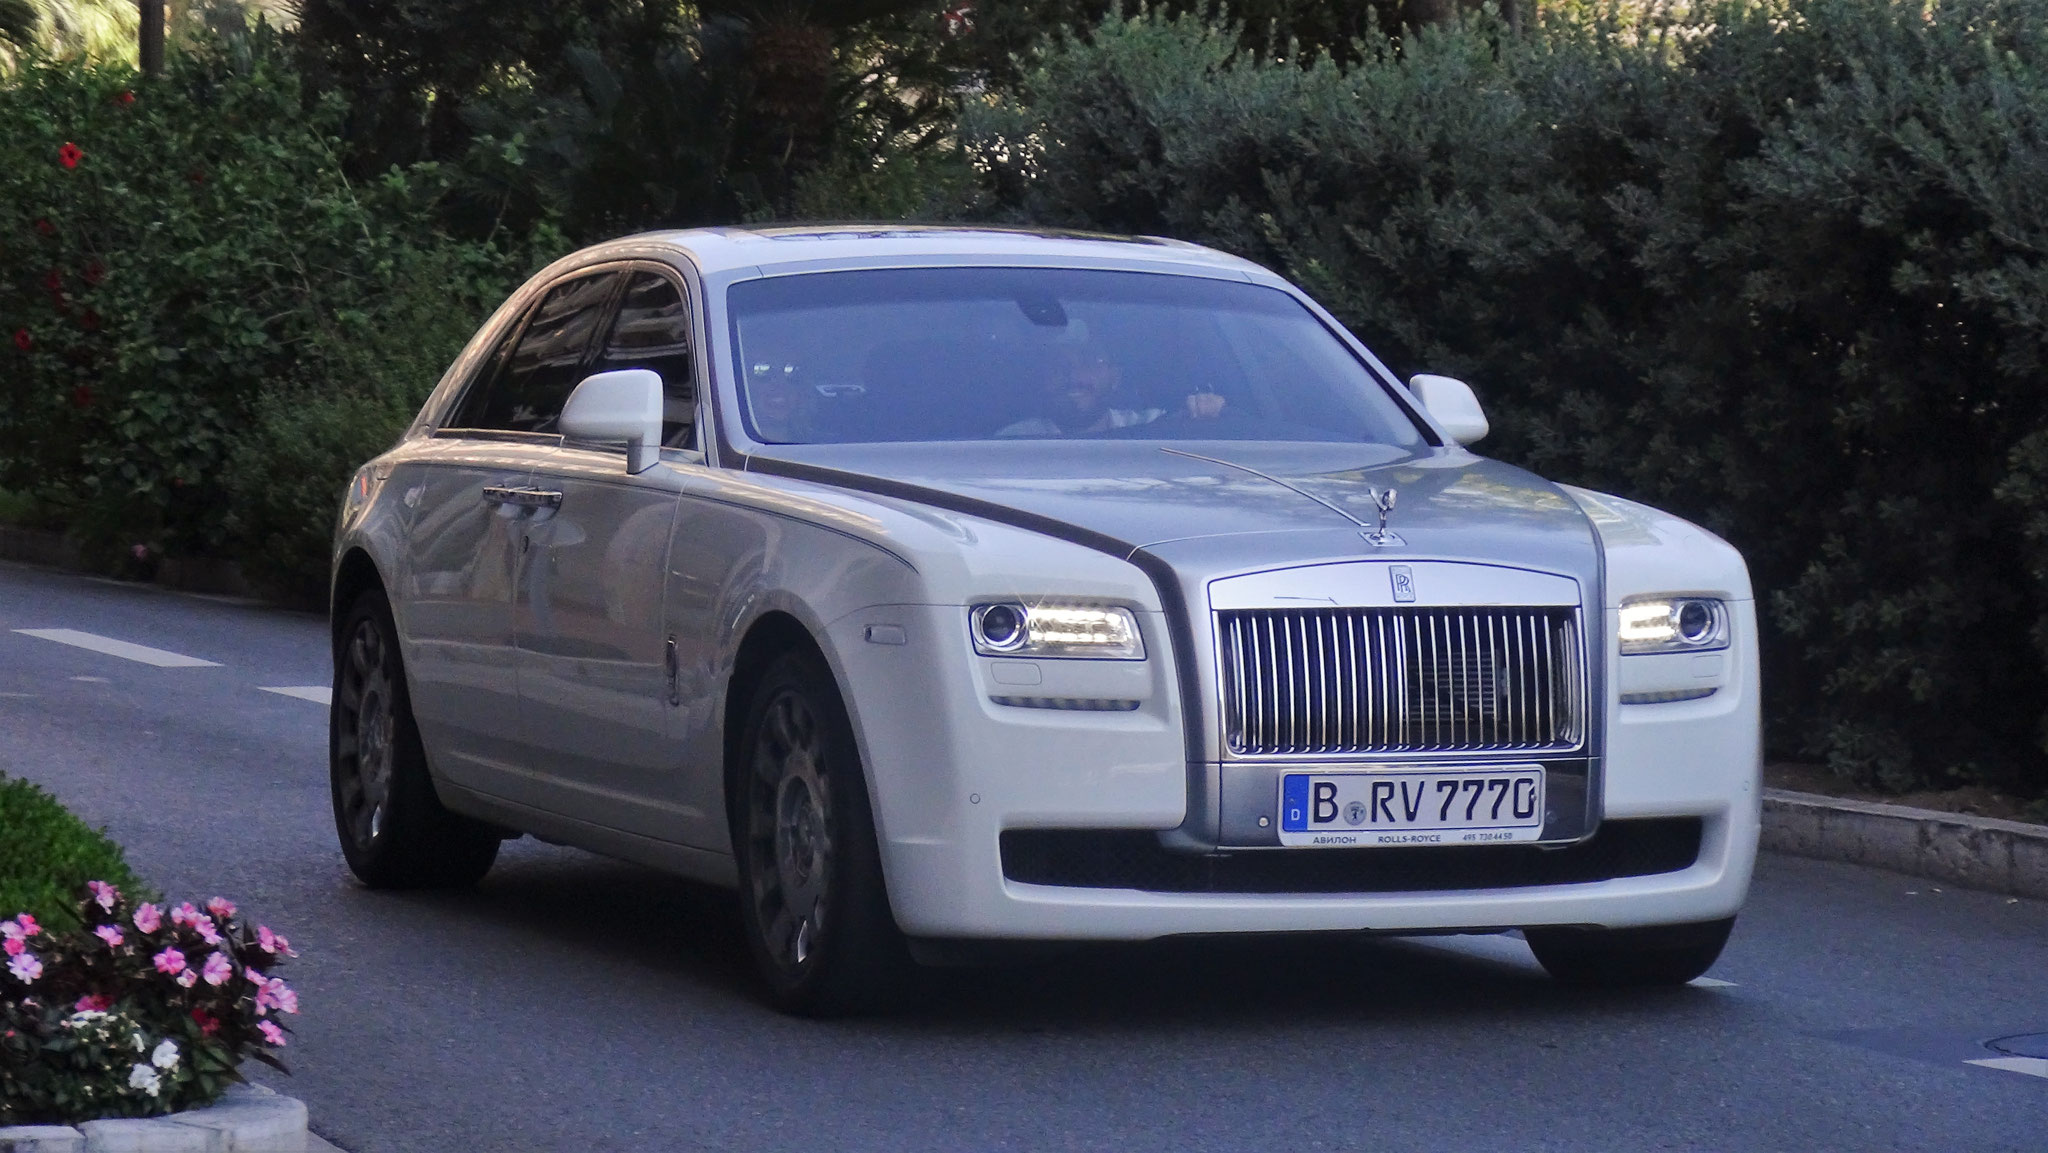 Rolls Royce Ghost - B-RV-7770